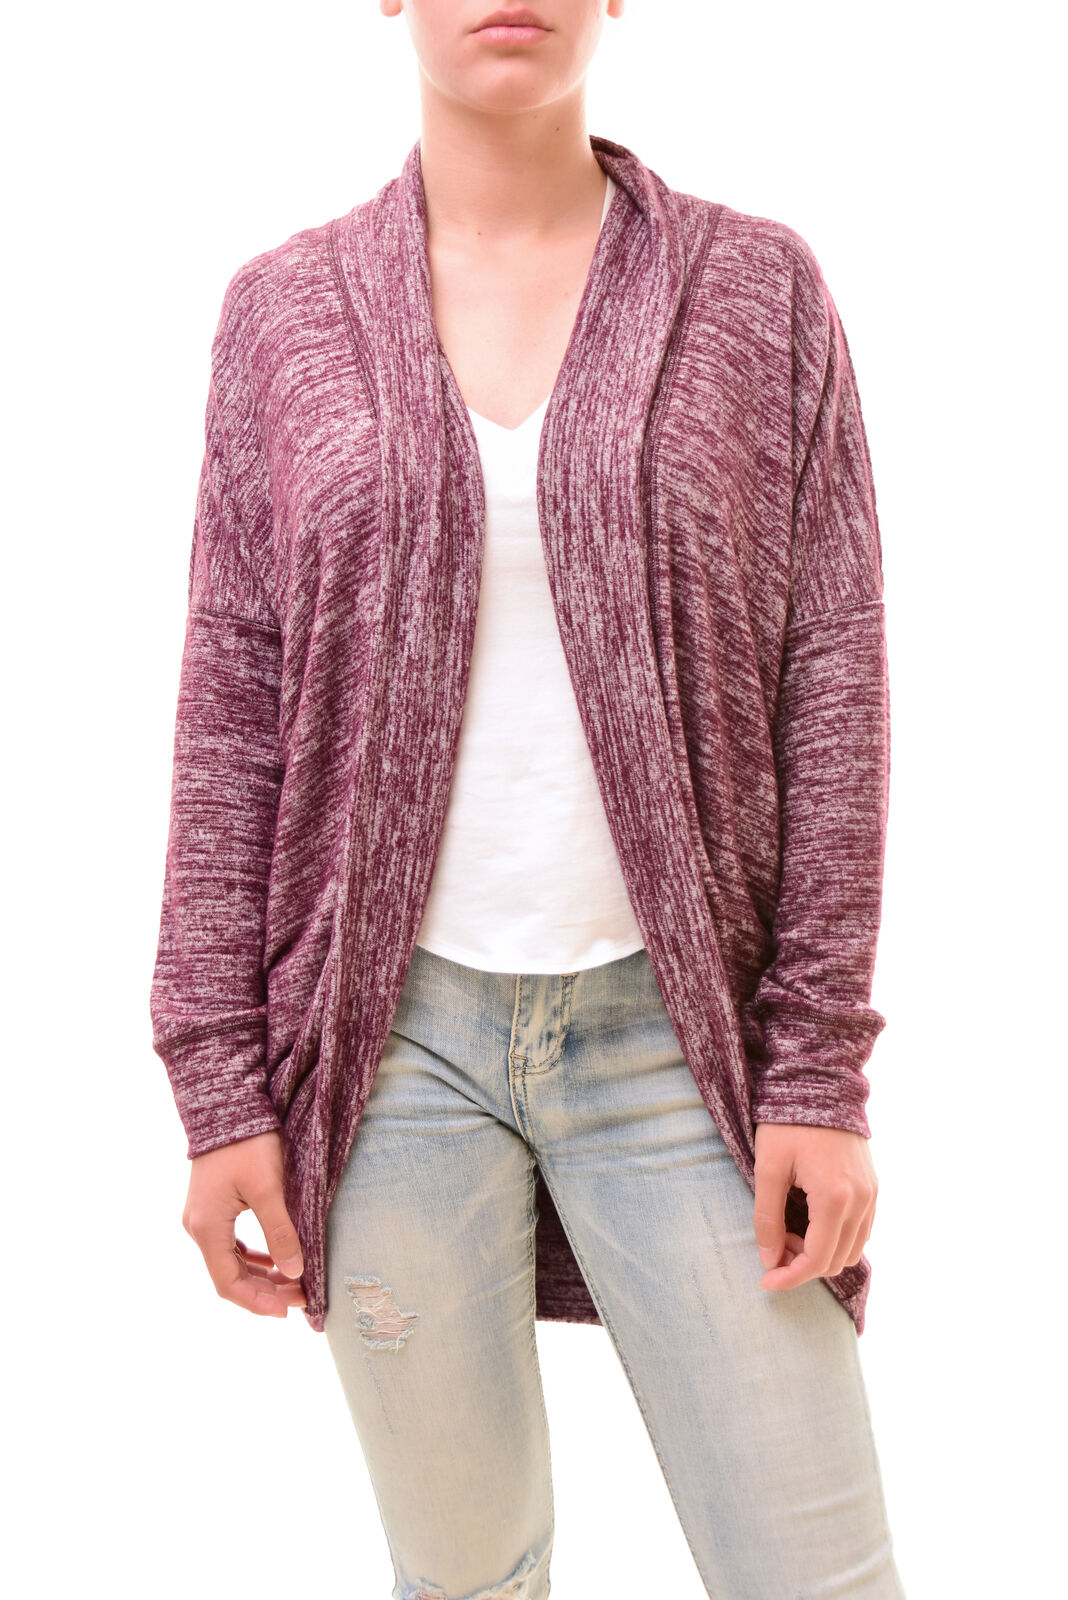 Sundry Women's Open Front Cardigan Burgundy White Size US 1 RRP  BCF78